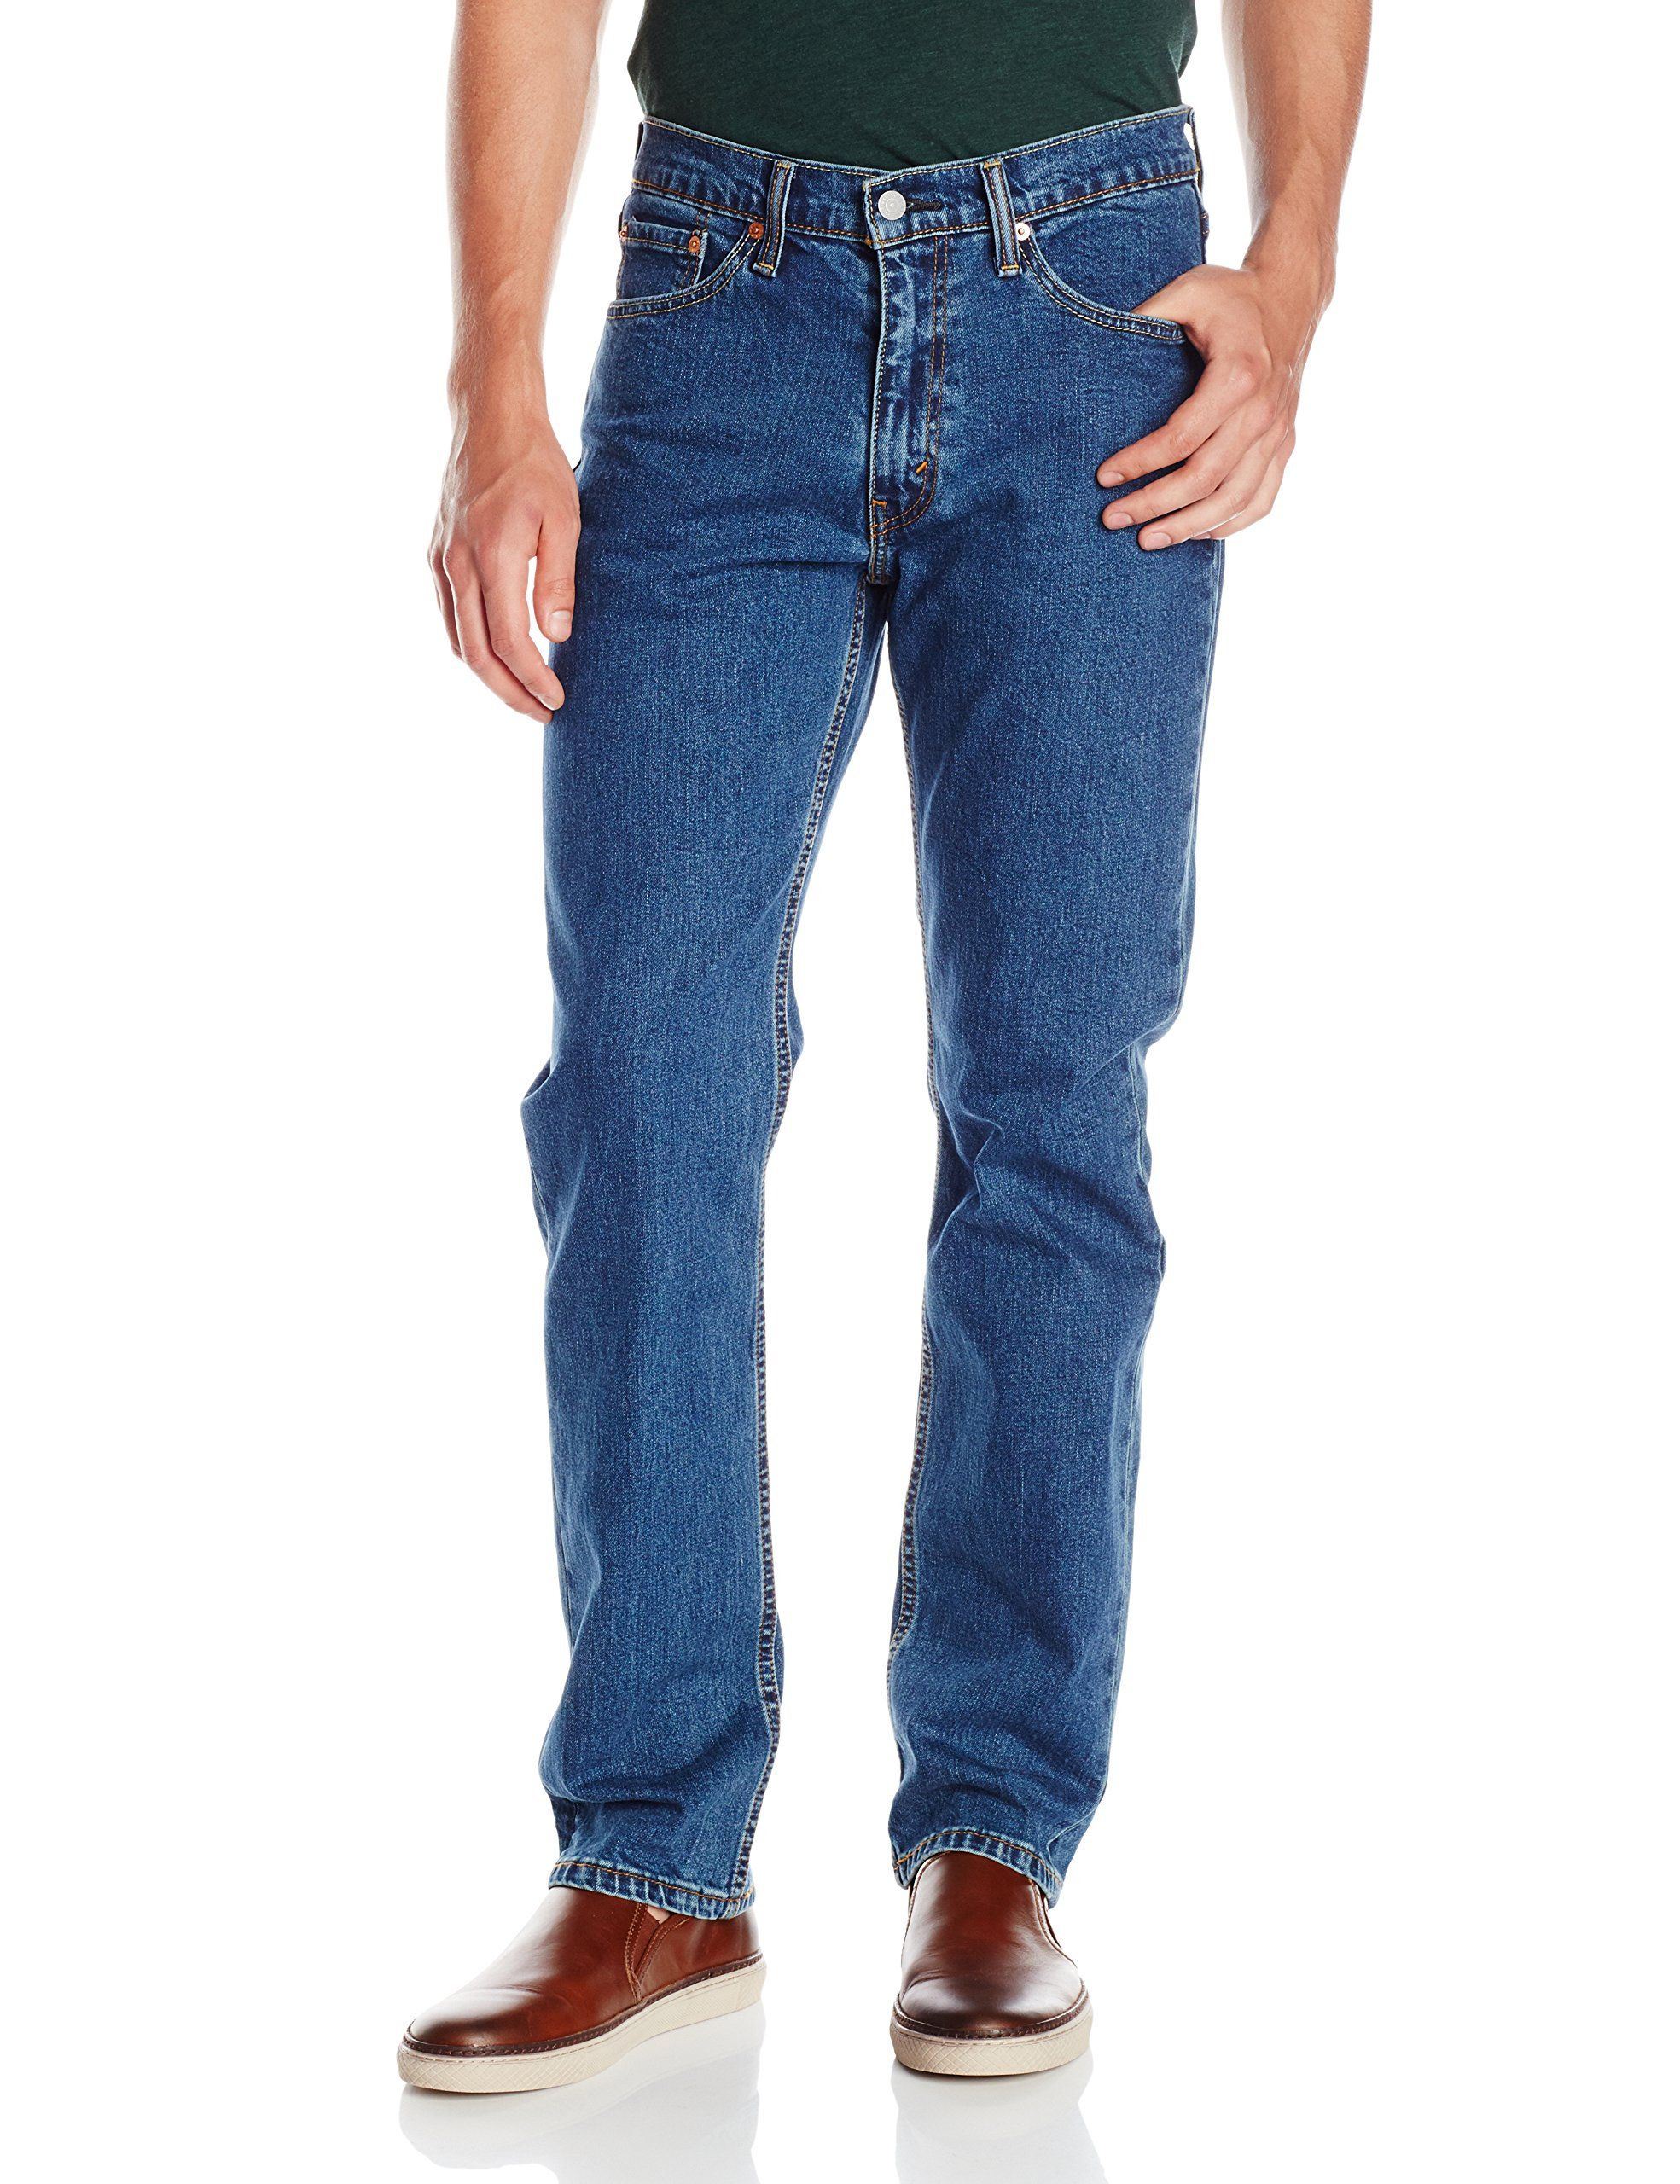 Super discount outlet store sale Official Website Levi's Men's 514 Straight Fit Stretch Jeans - 32W x 36L - Stonewash Stretch